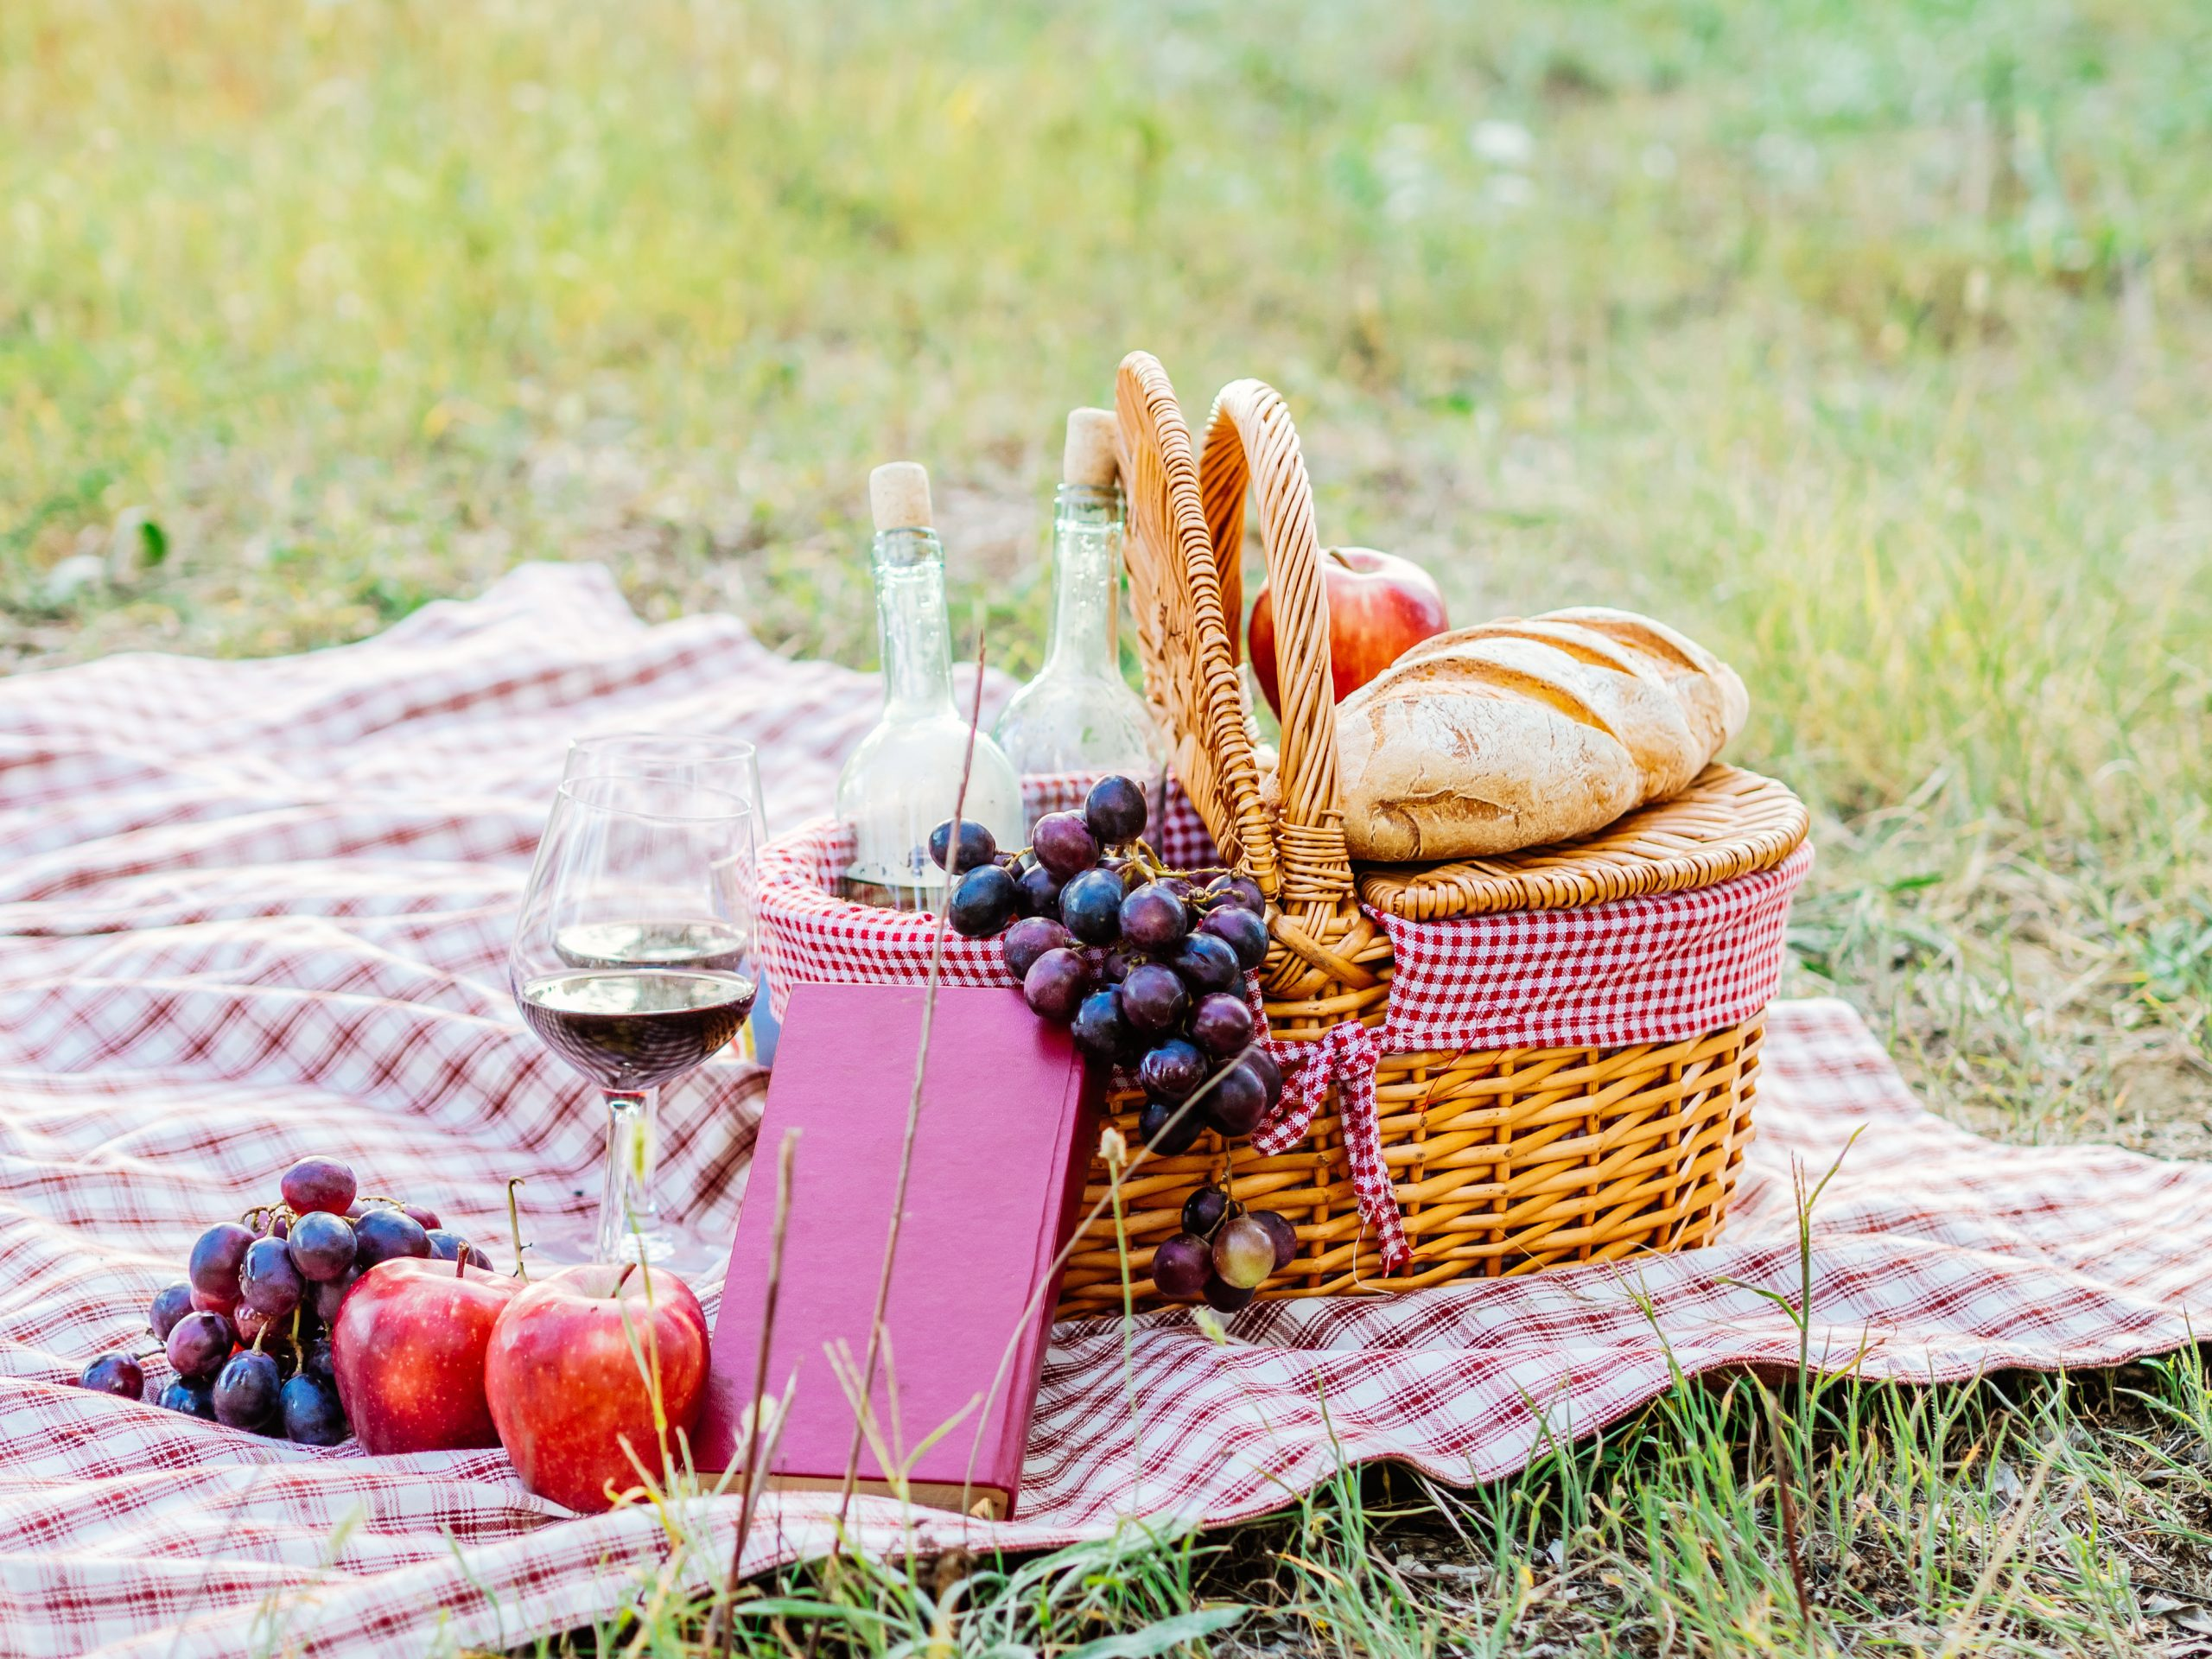 Picknicken in Waging am See